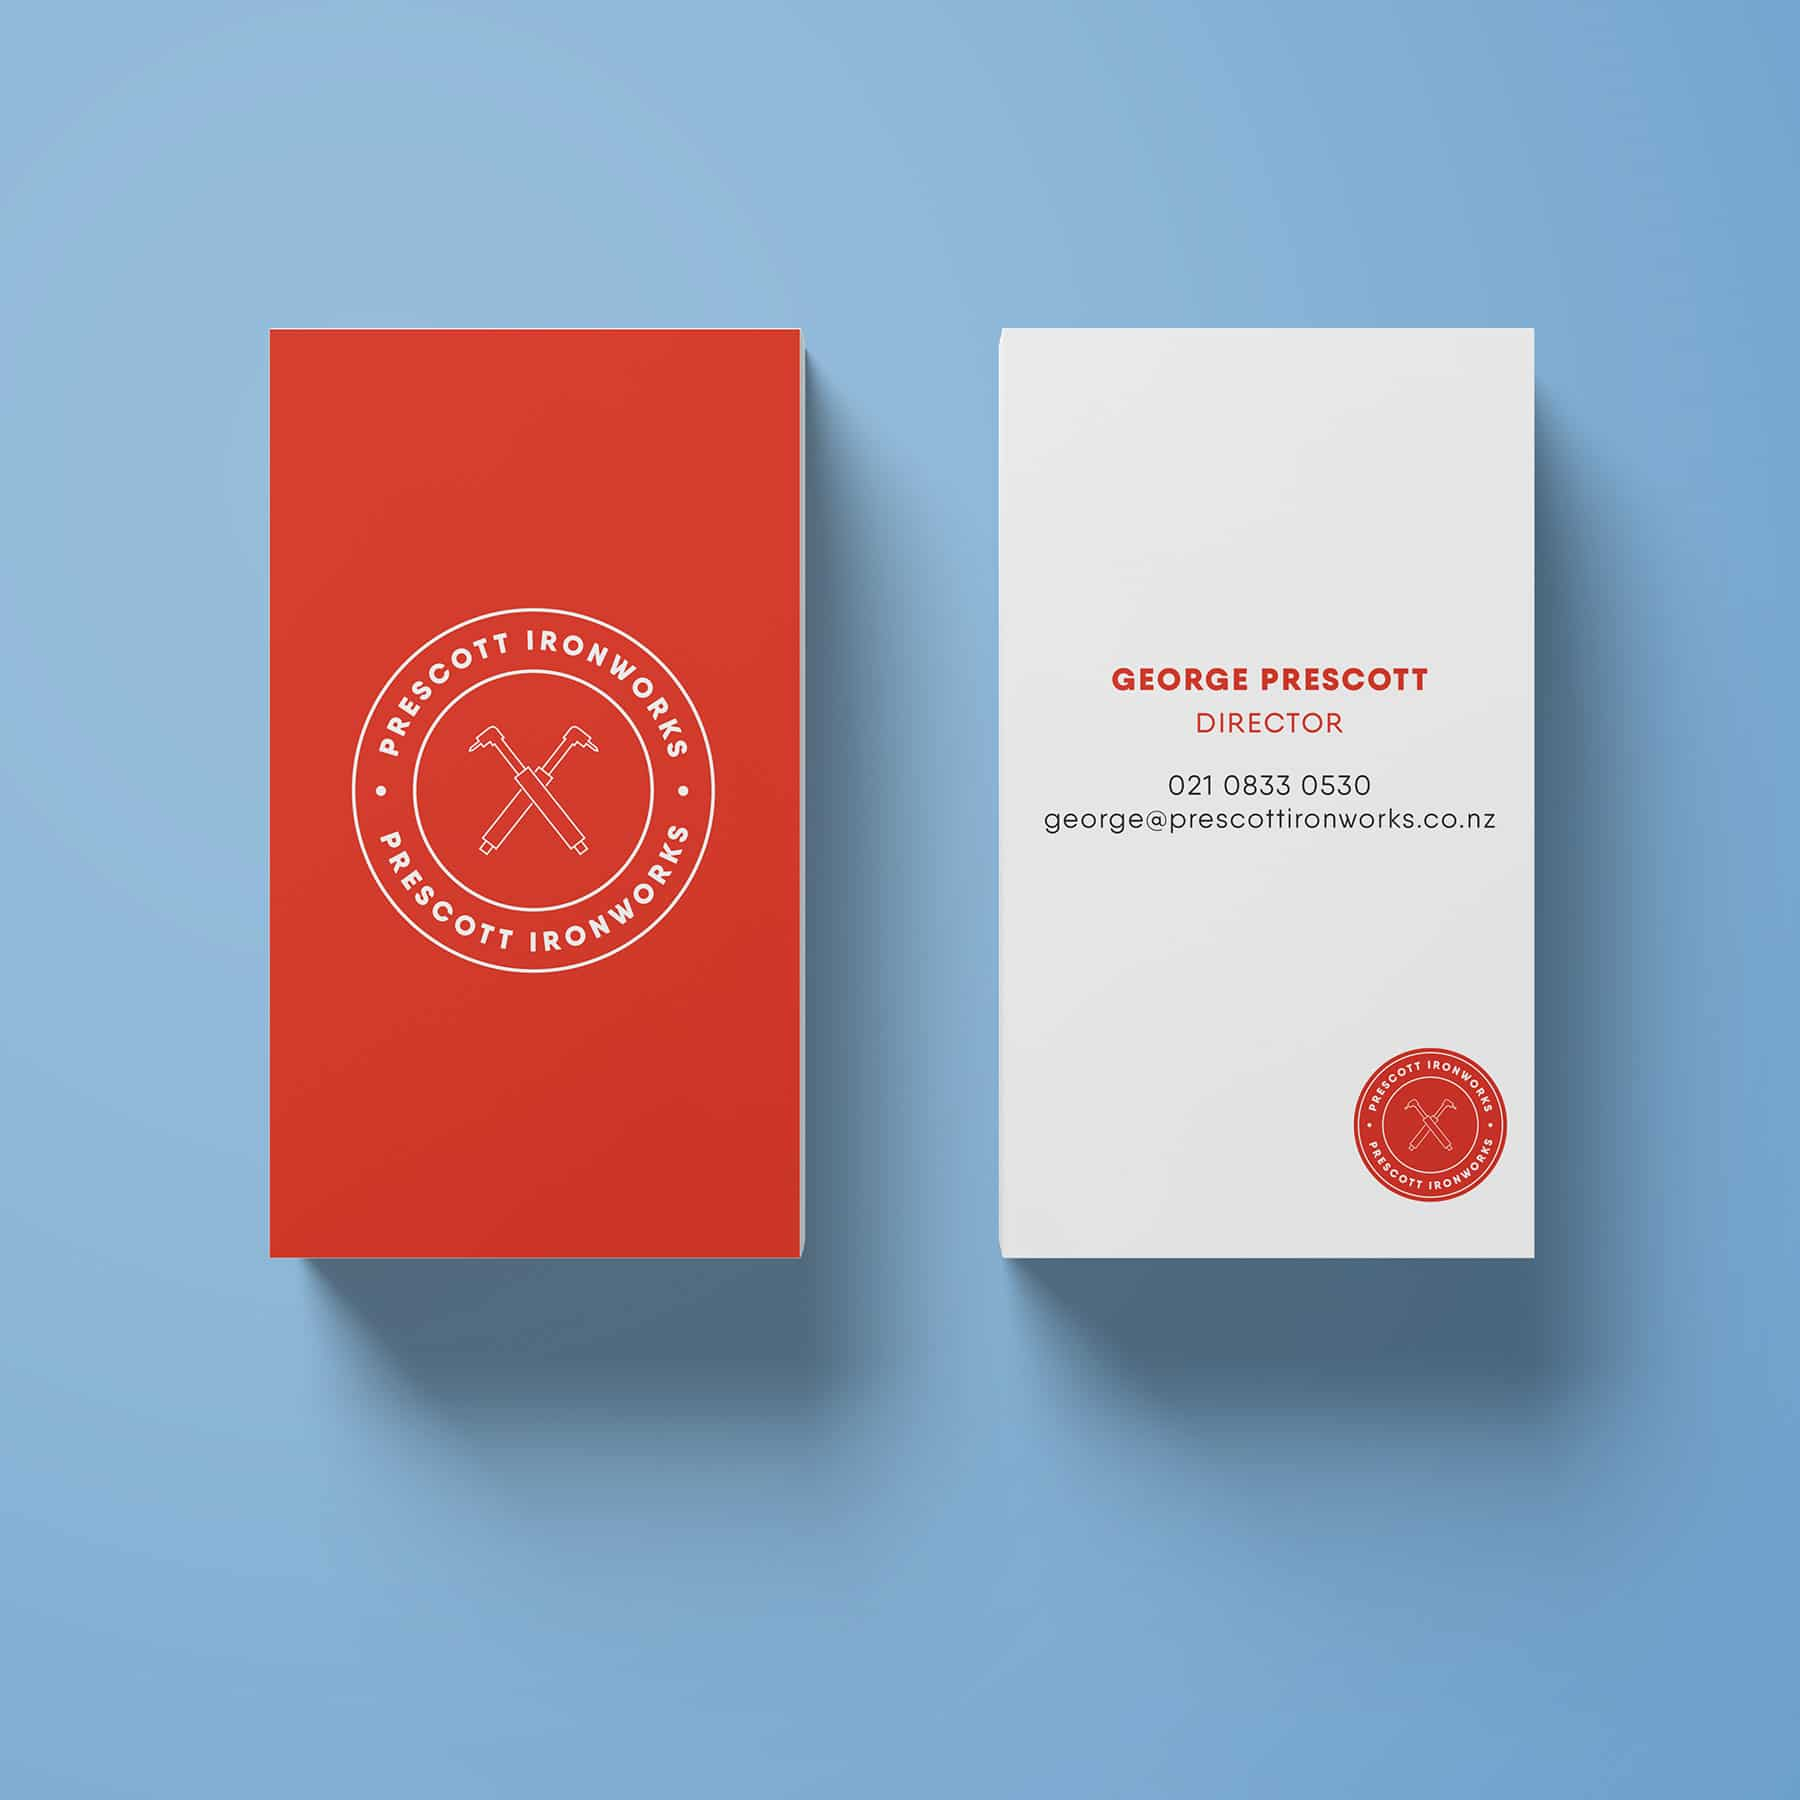 Graphic design company in NZ work on some white and red business cards